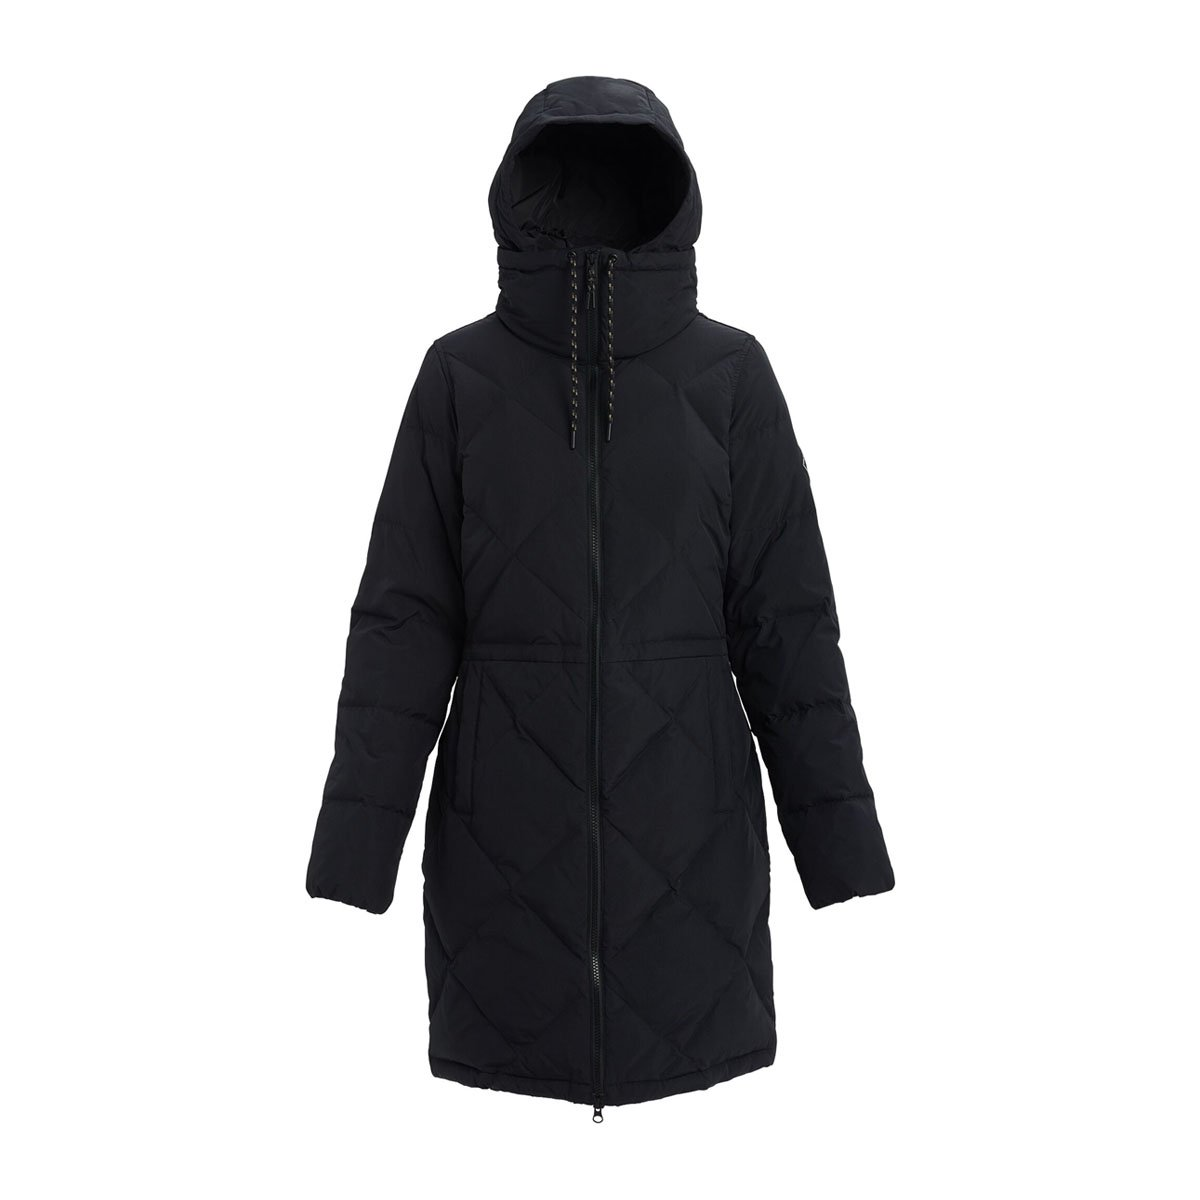 WB CHESCOTT DOWN JACKET